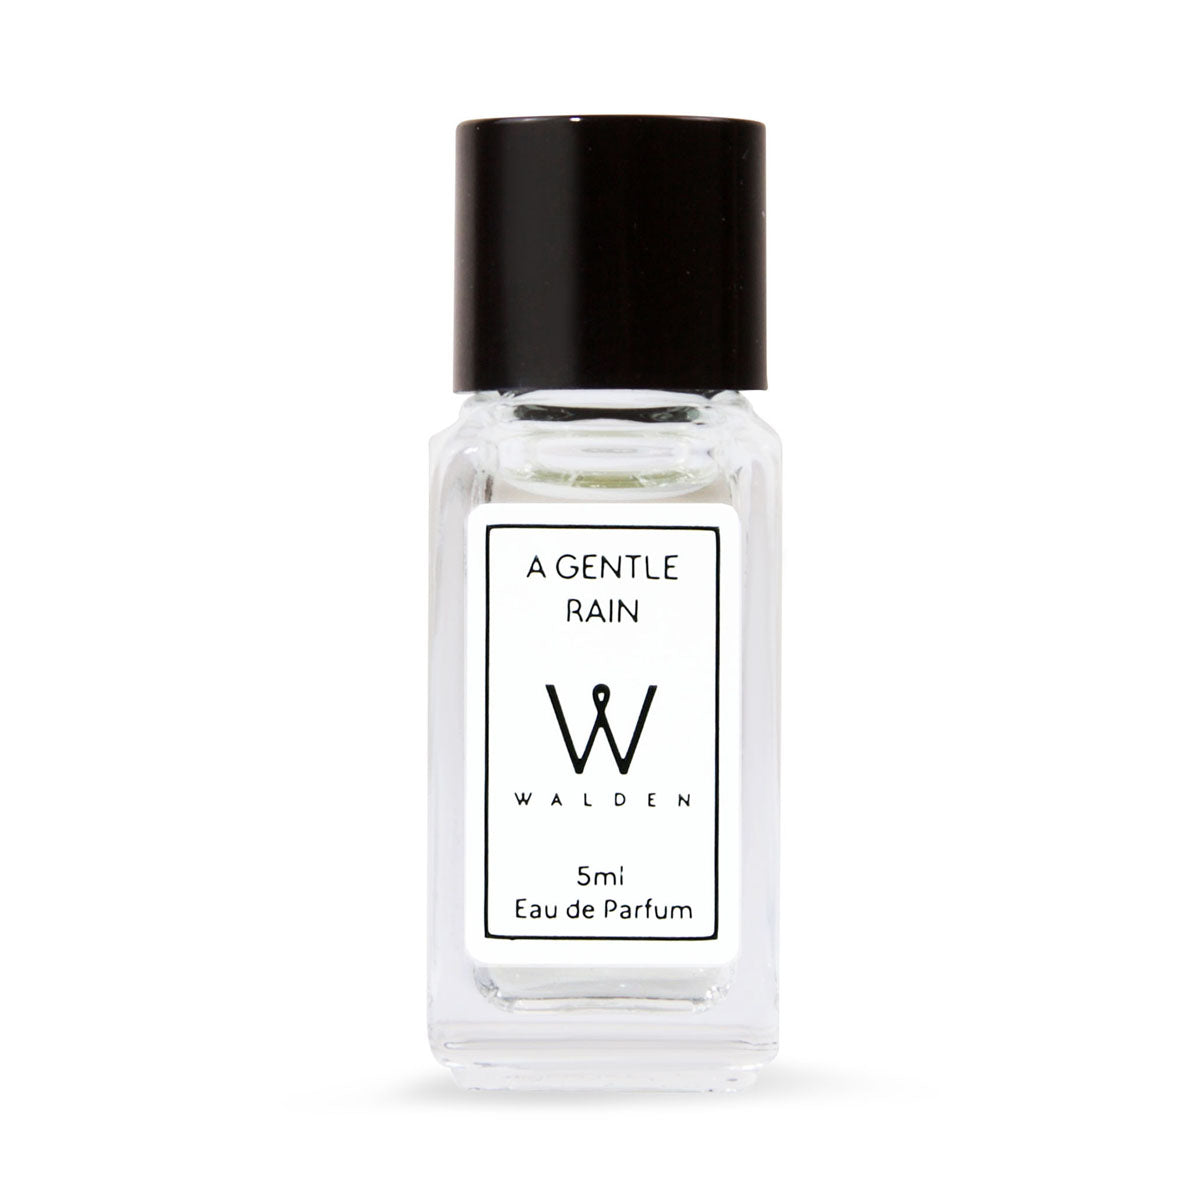 'A Gentle Rain' Natural Perfume Sample 5ml